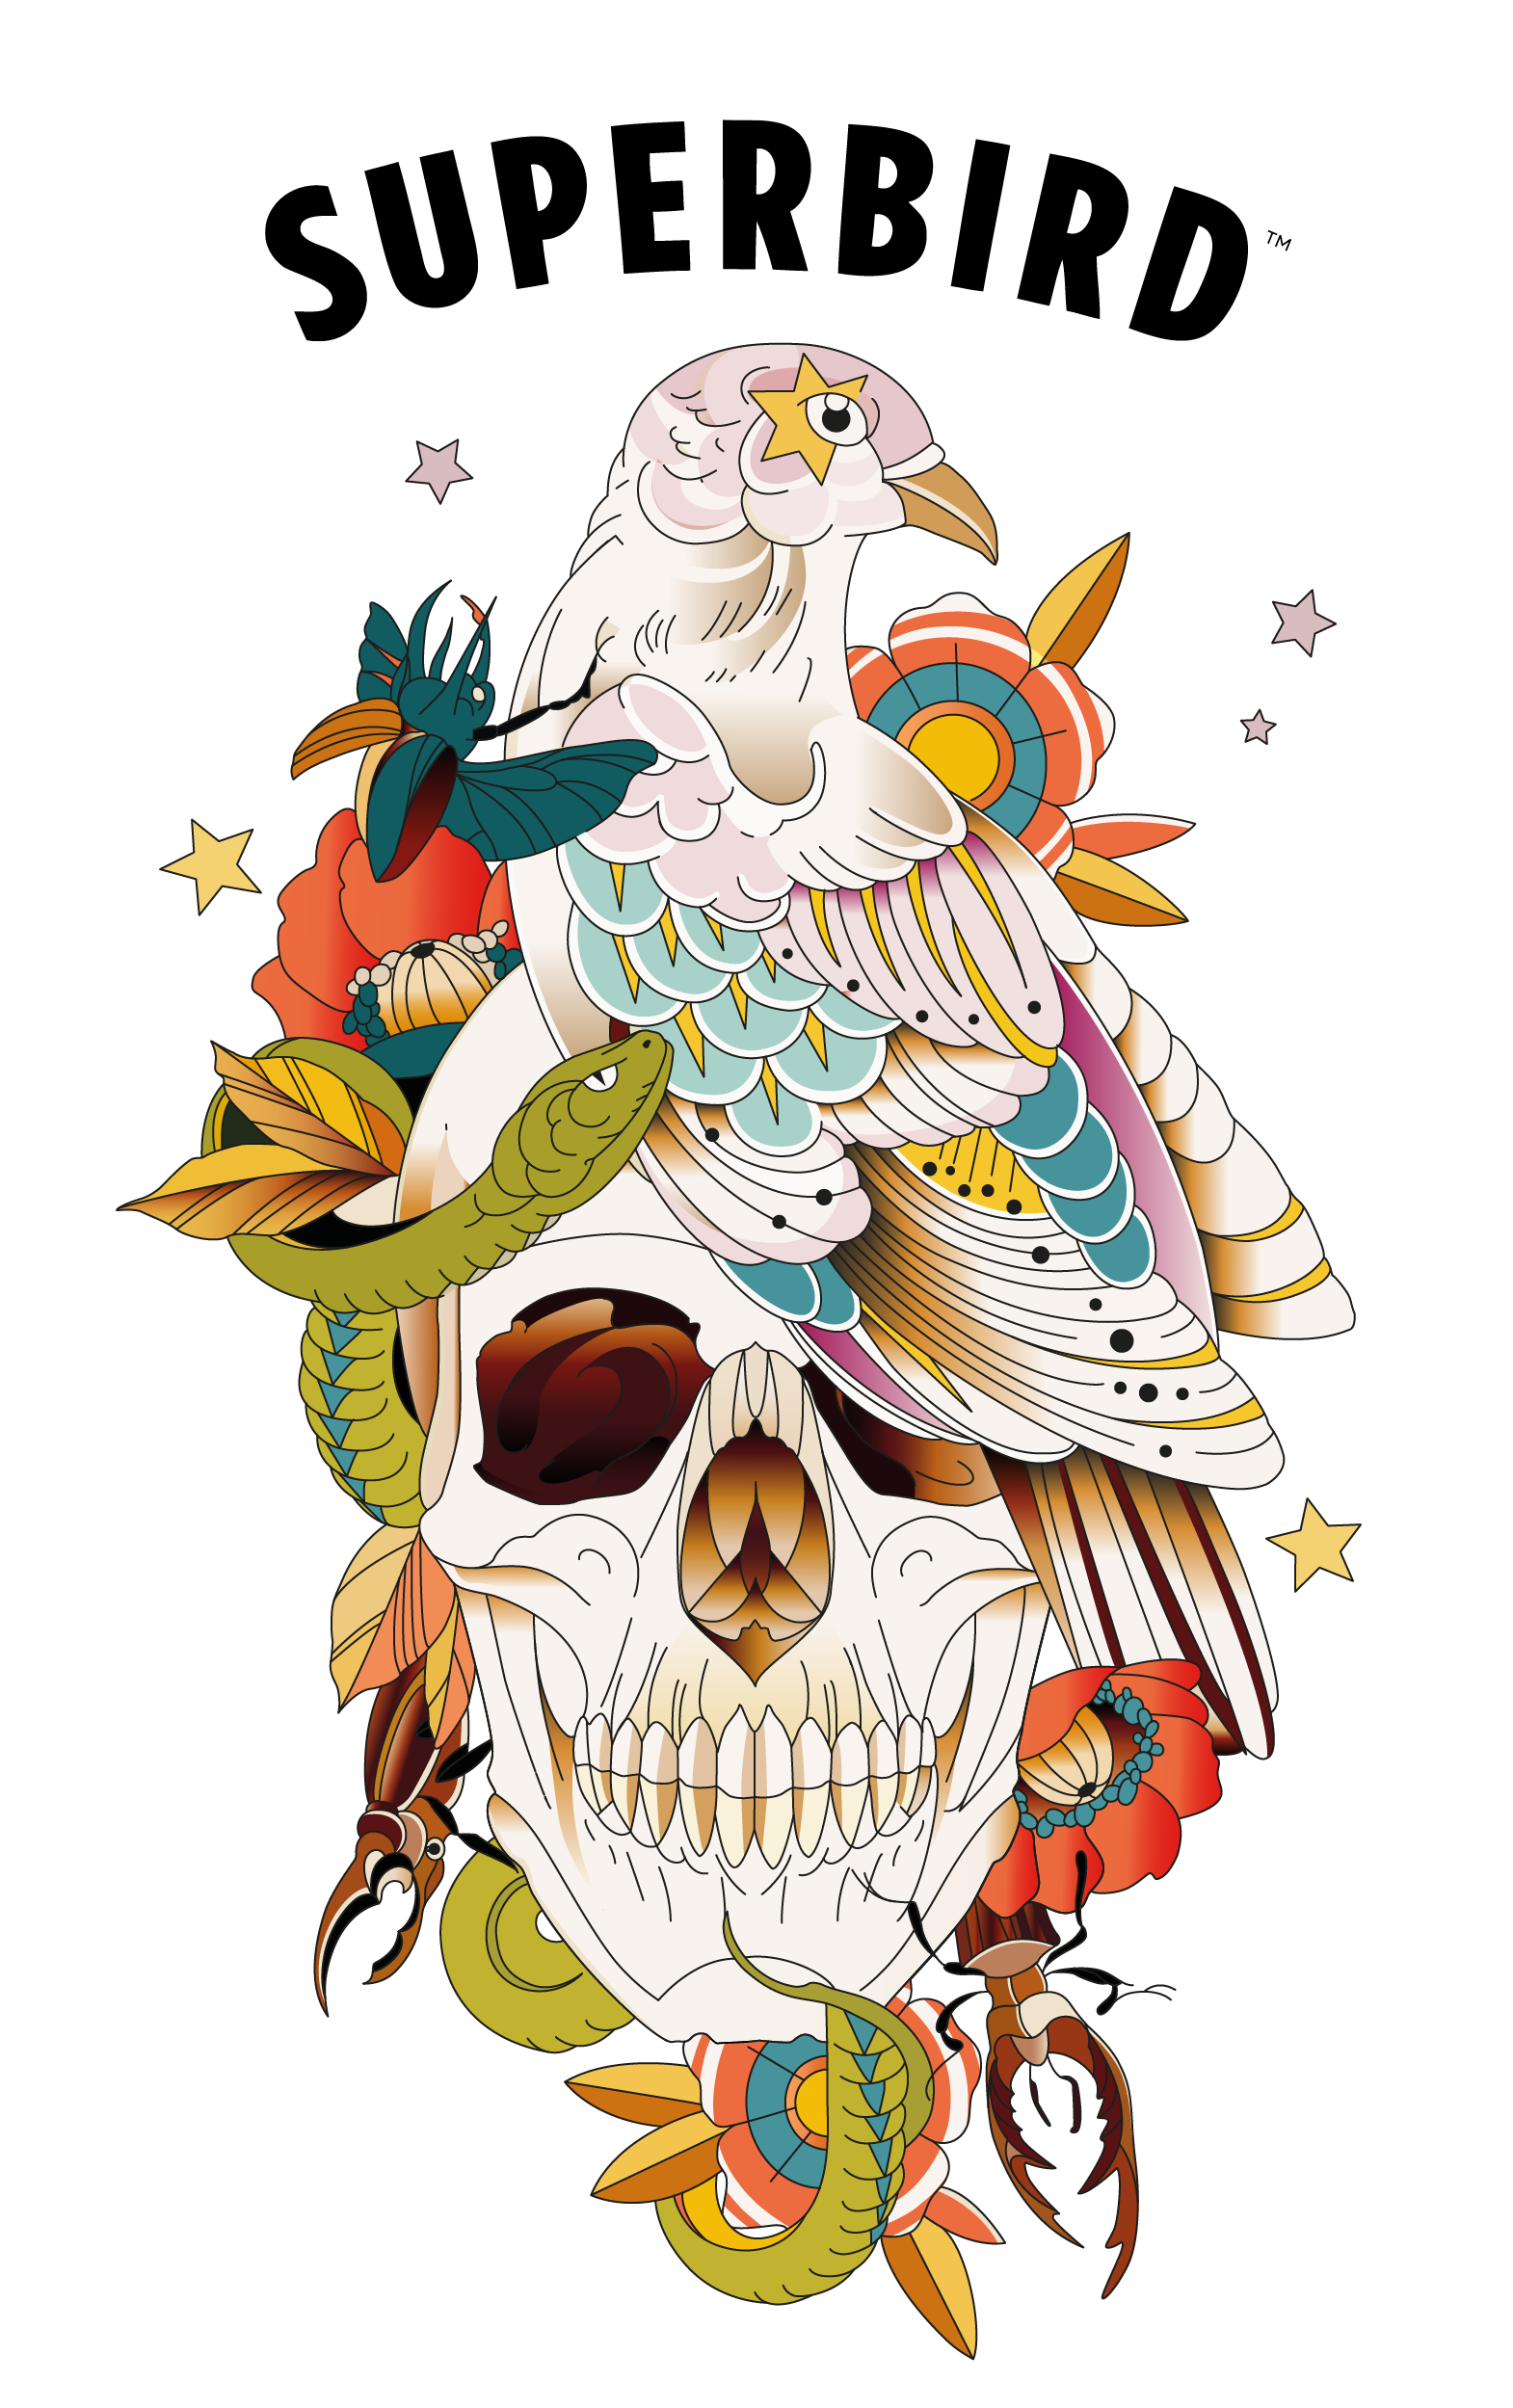 Superbird logo over an illustration of a dove sitting on a skull with a snake, flowers, and beetles surrounding it.